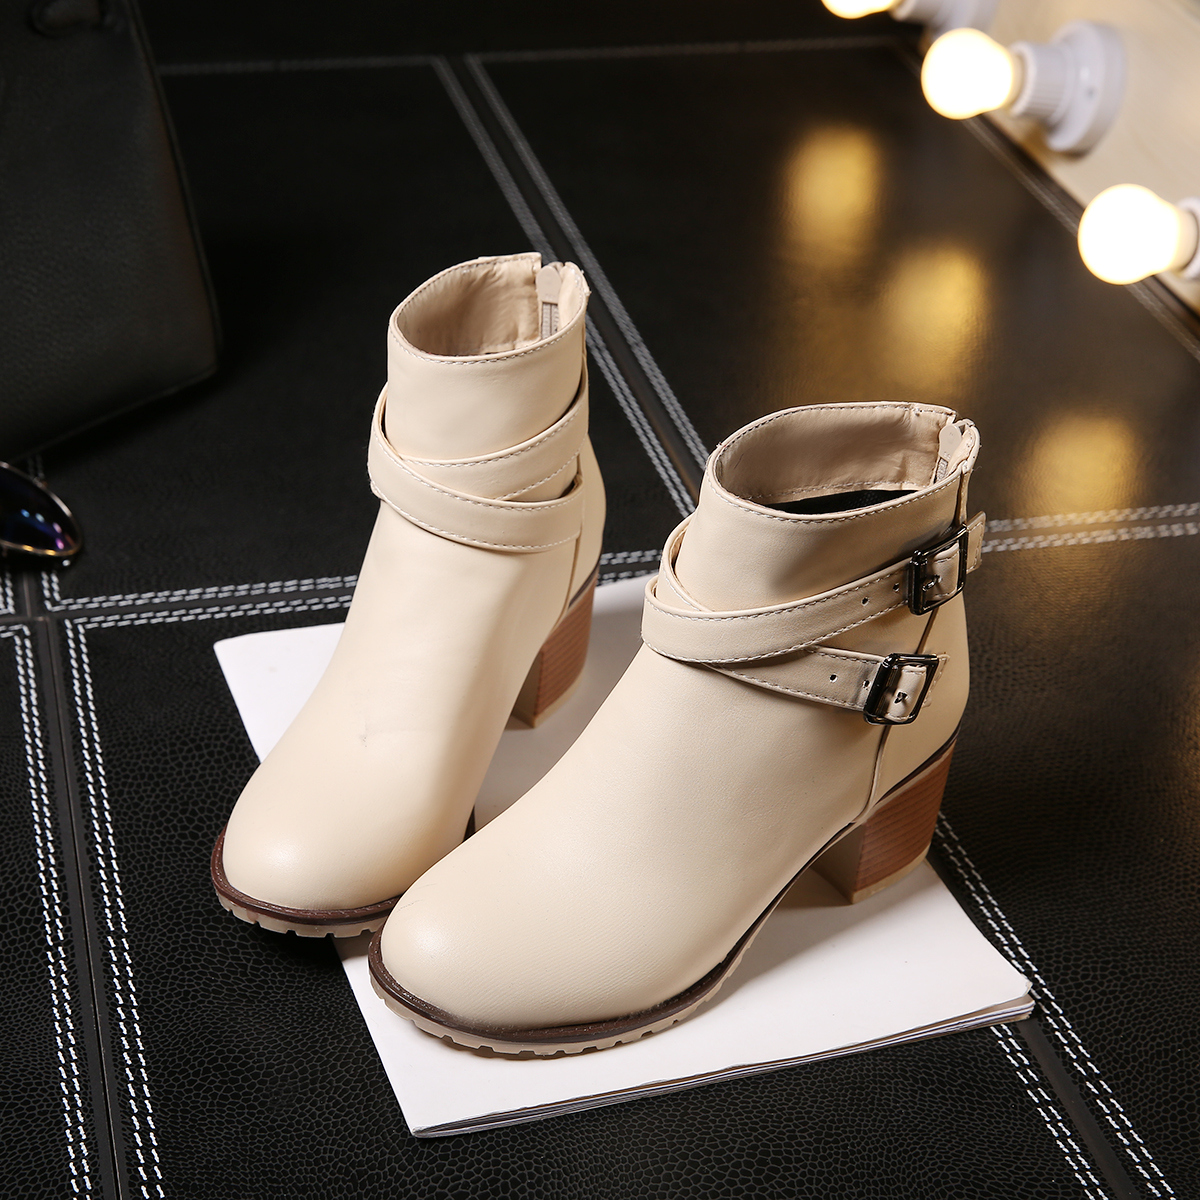 Ulass Autumn and winter women shoes vintage Europe star fashion women high heels Ankle boots Snow short boots zipper ST-015